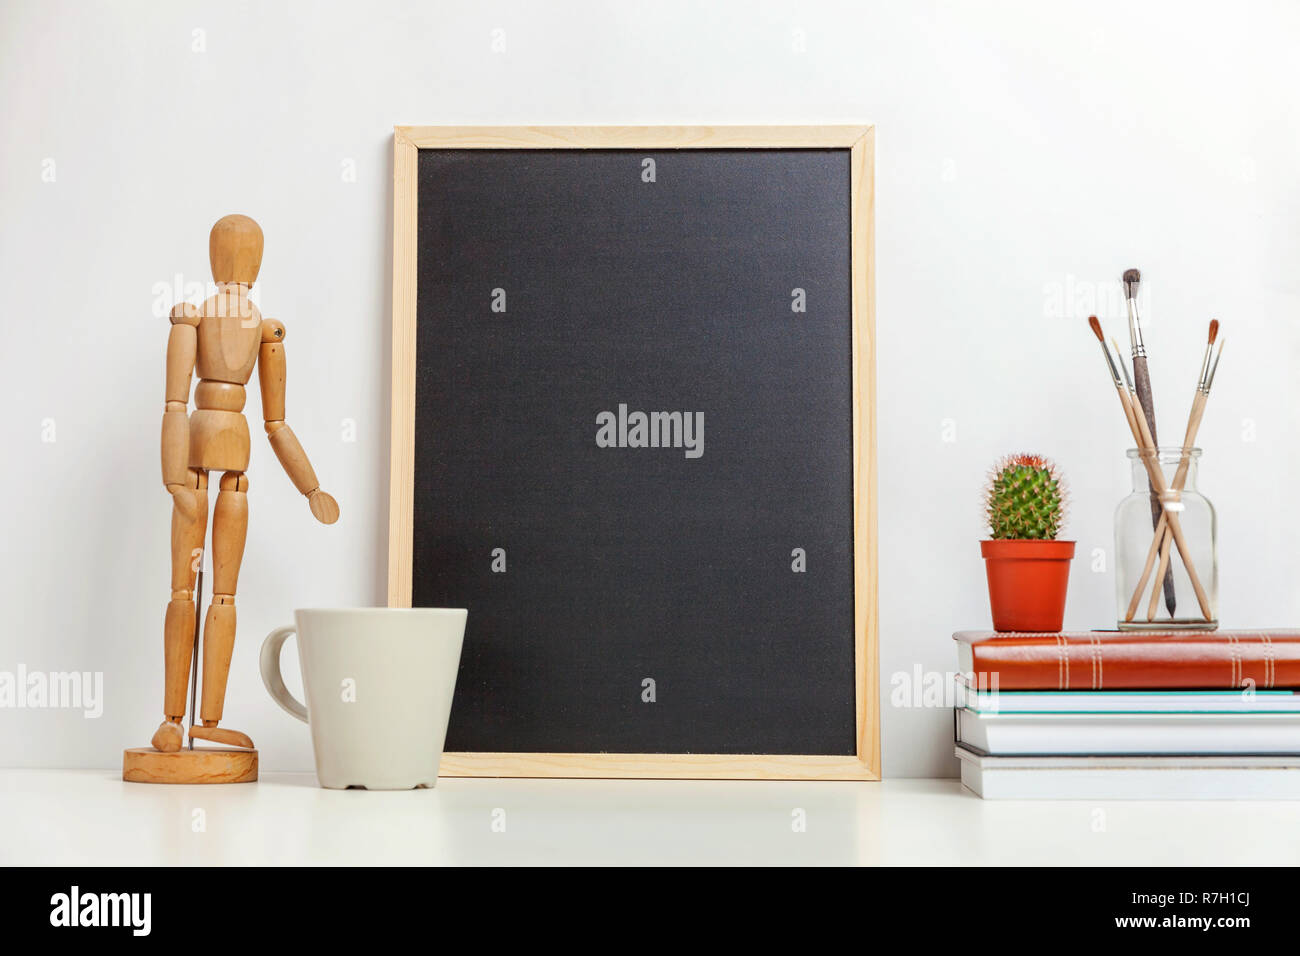 Home Or Office Decor With Mock Up Blank Chalkboard On Table Near White Wall Minimalism Interior Workplace Artist Supplies Decoration Background Hygg